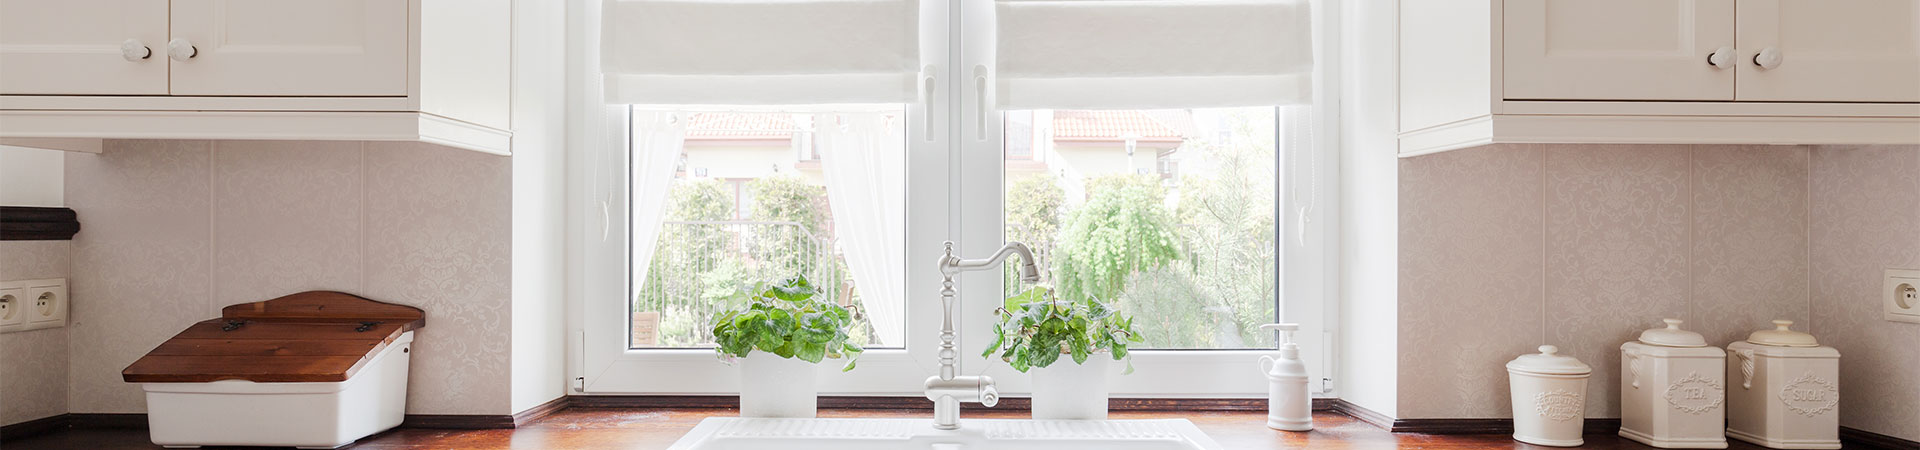 uPVC Windows in Staffordshire and Stoke-on-Trent